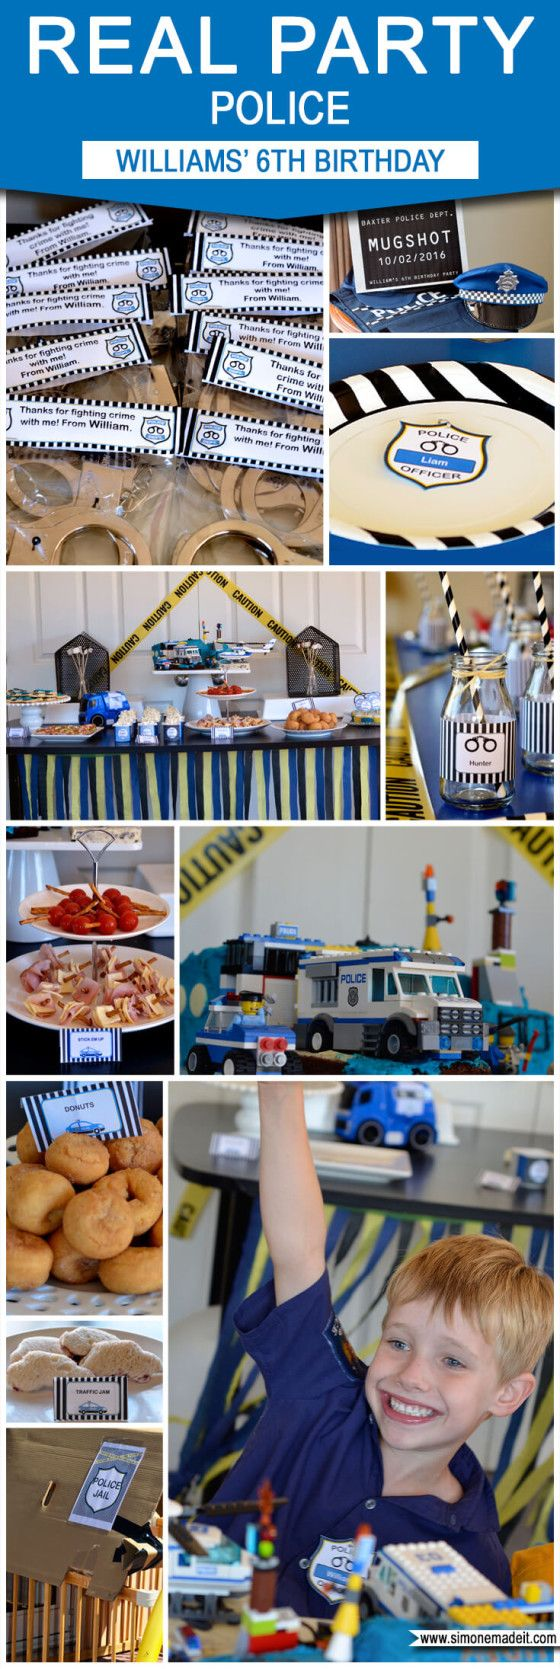 Williams' 6th Police Birthday Party | Police Birthday Party Ideas: